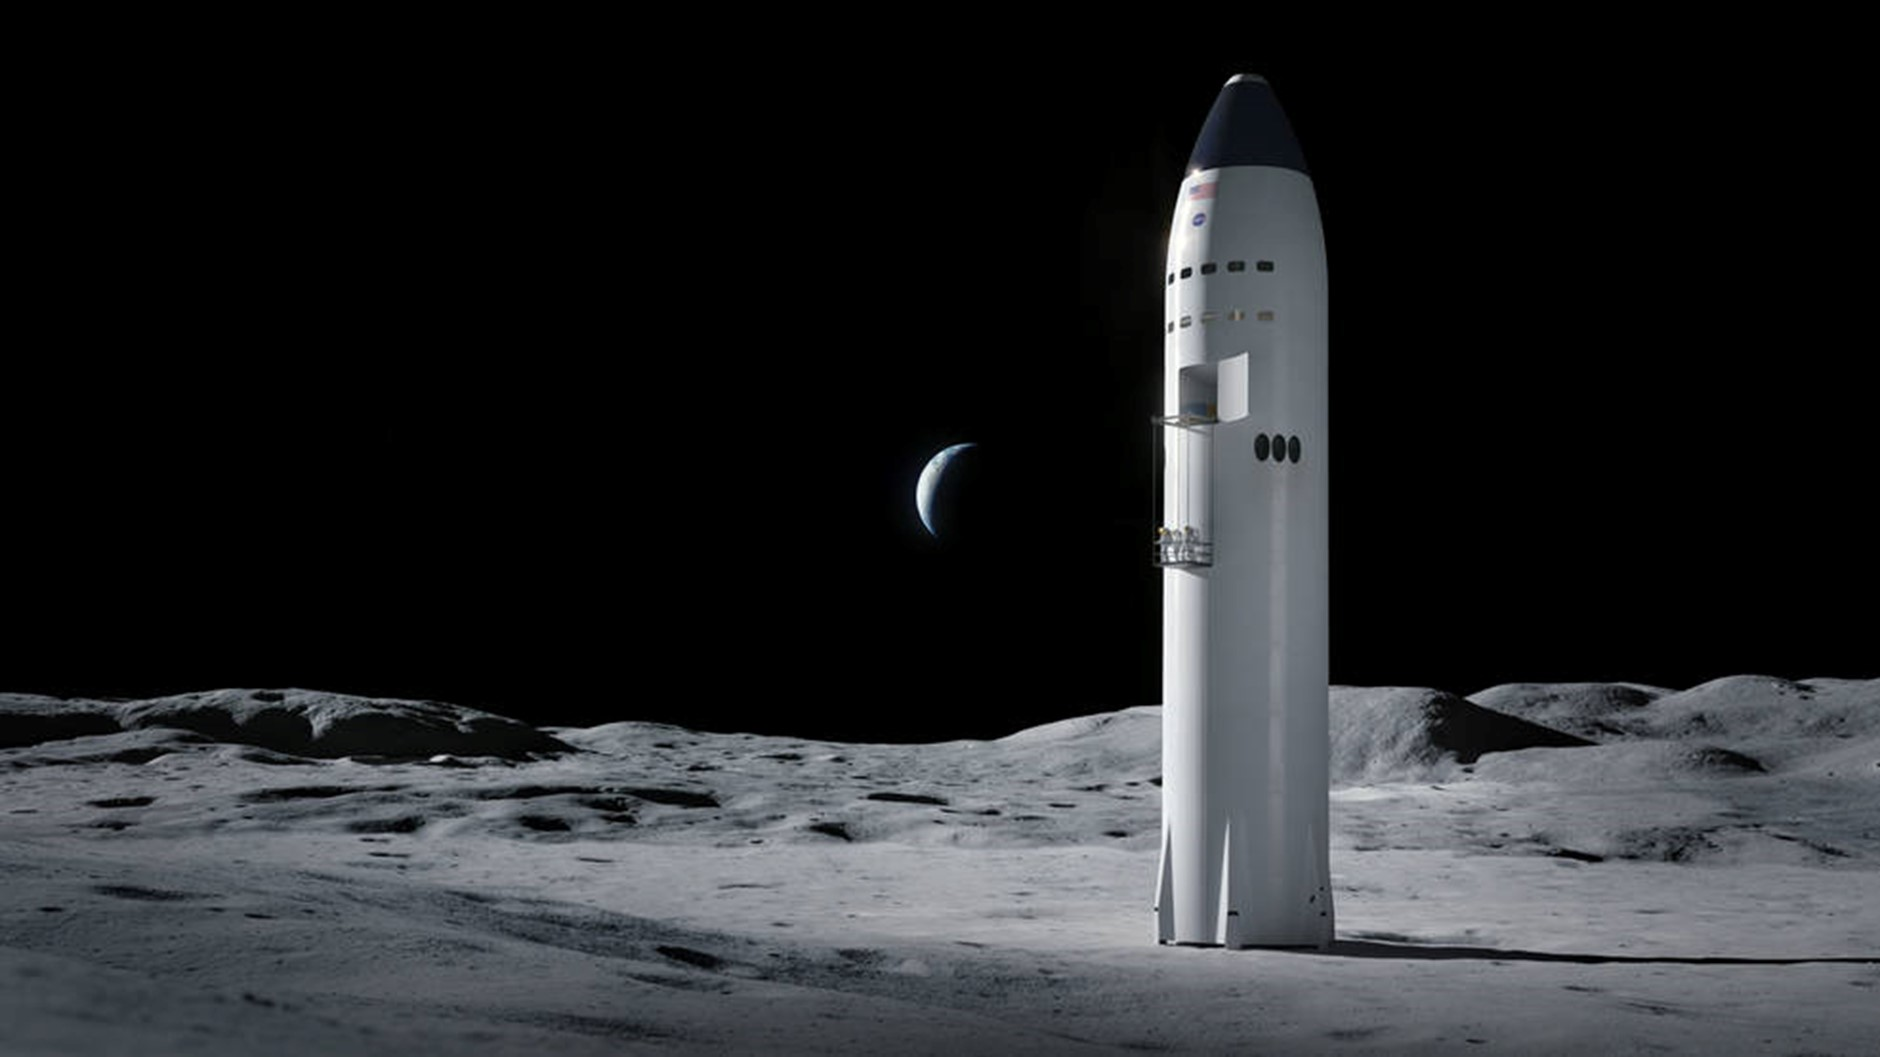 A Starship on the Moon. Source: https://www.nasa.gov/feature/nasa-selects-blue-origin-dynetics-spacex-for-artemis-human-landers